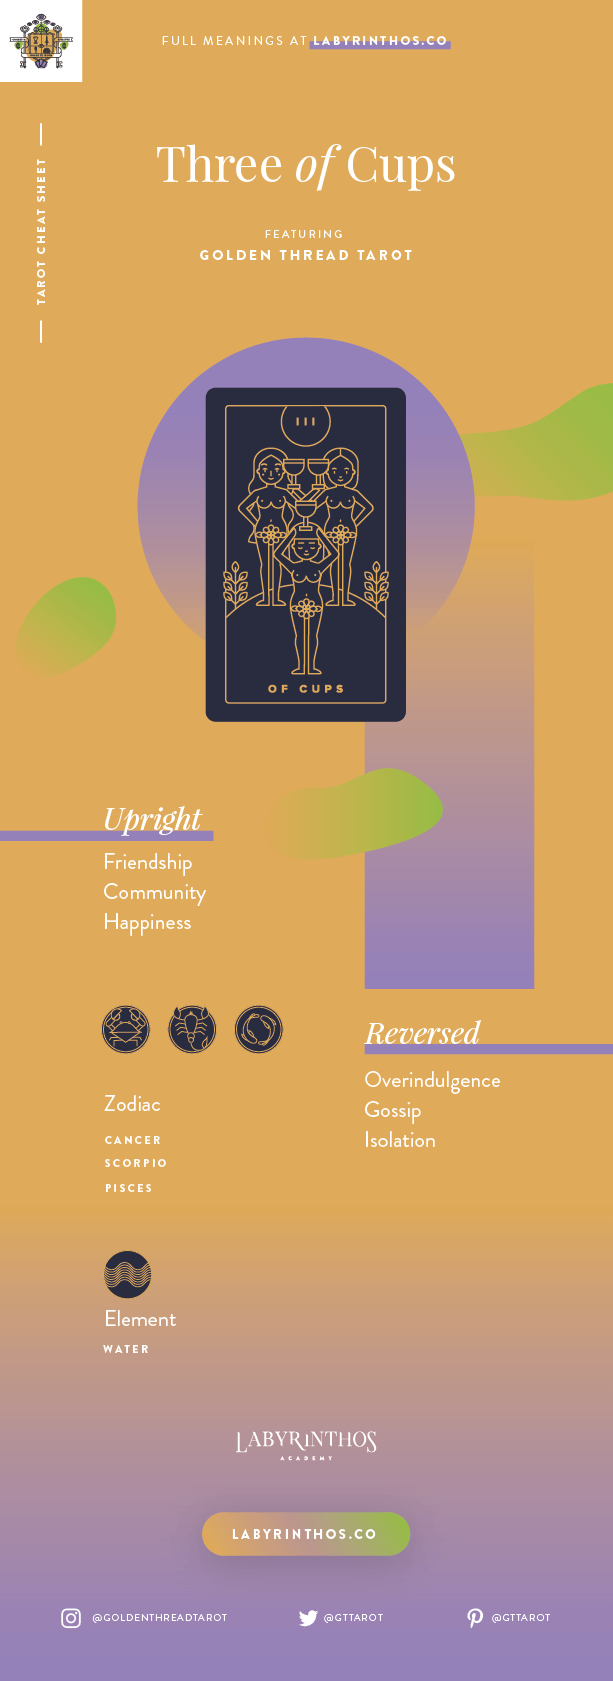 Three of Cups Meaning - Tarot Card Meanings Cheat Sheet. Art from Golden Thread Tarot.